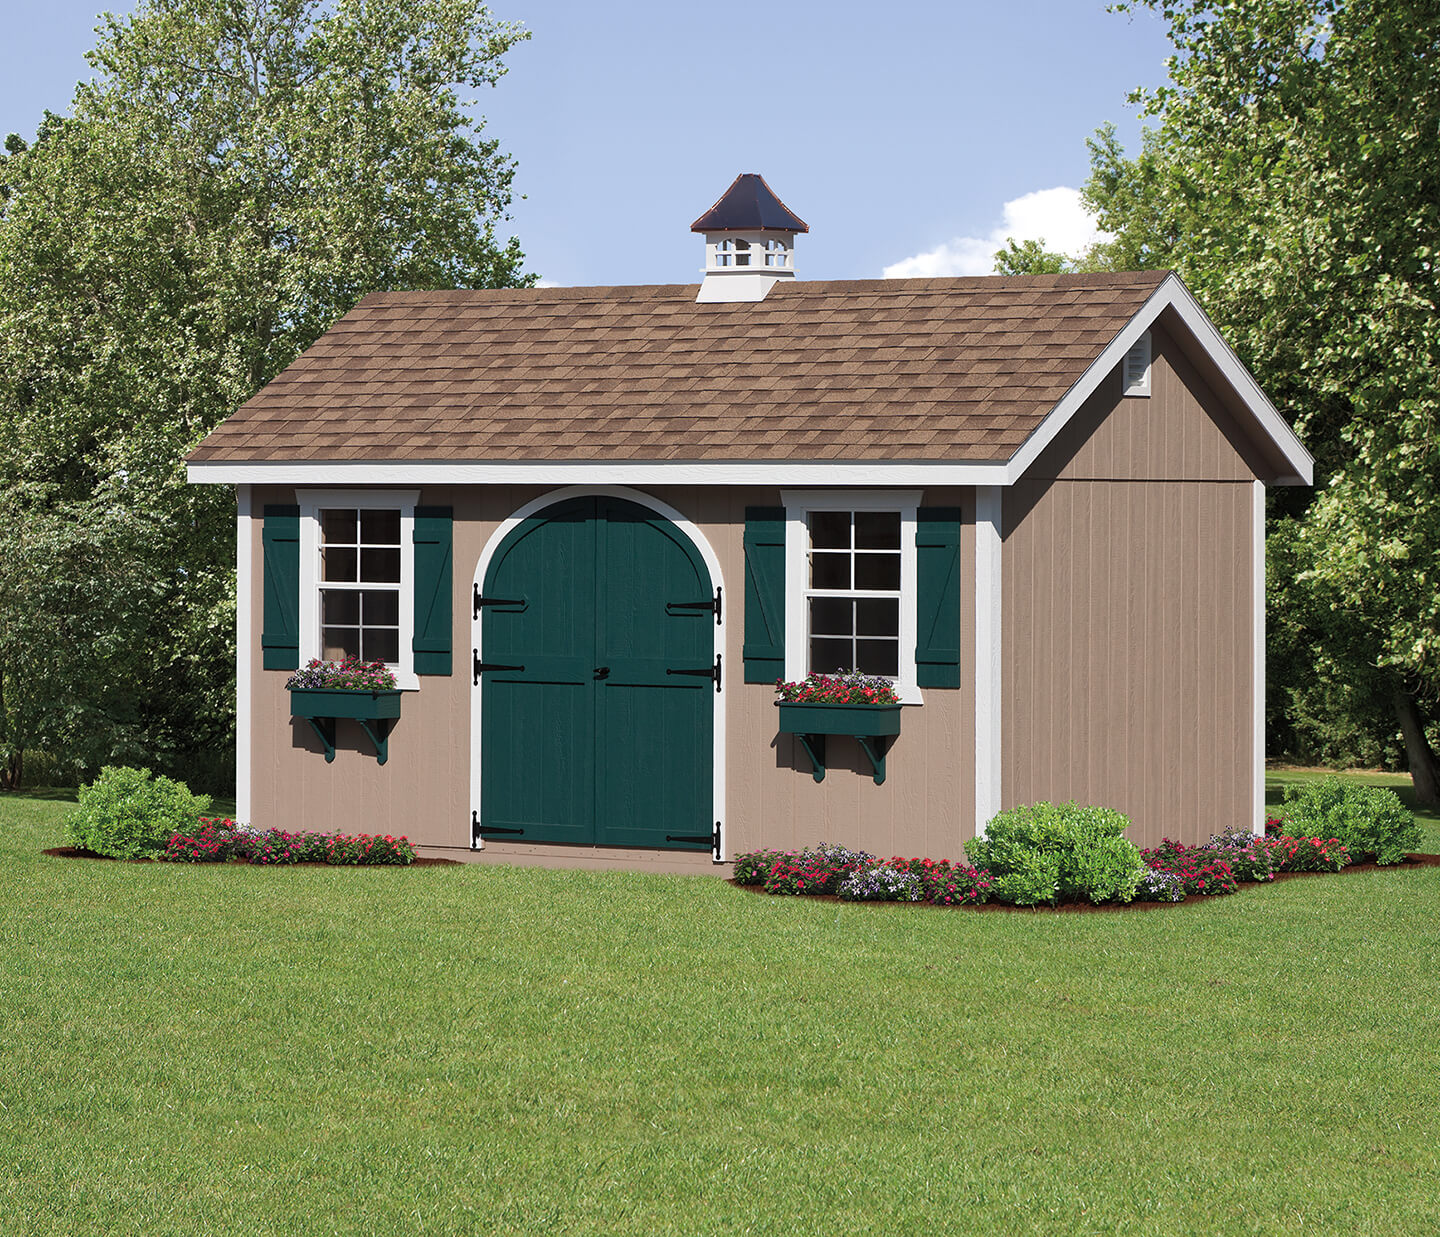 Charmant 12u0027x20u0027 Classic With Double Round Top Door And Copper Top Cupola